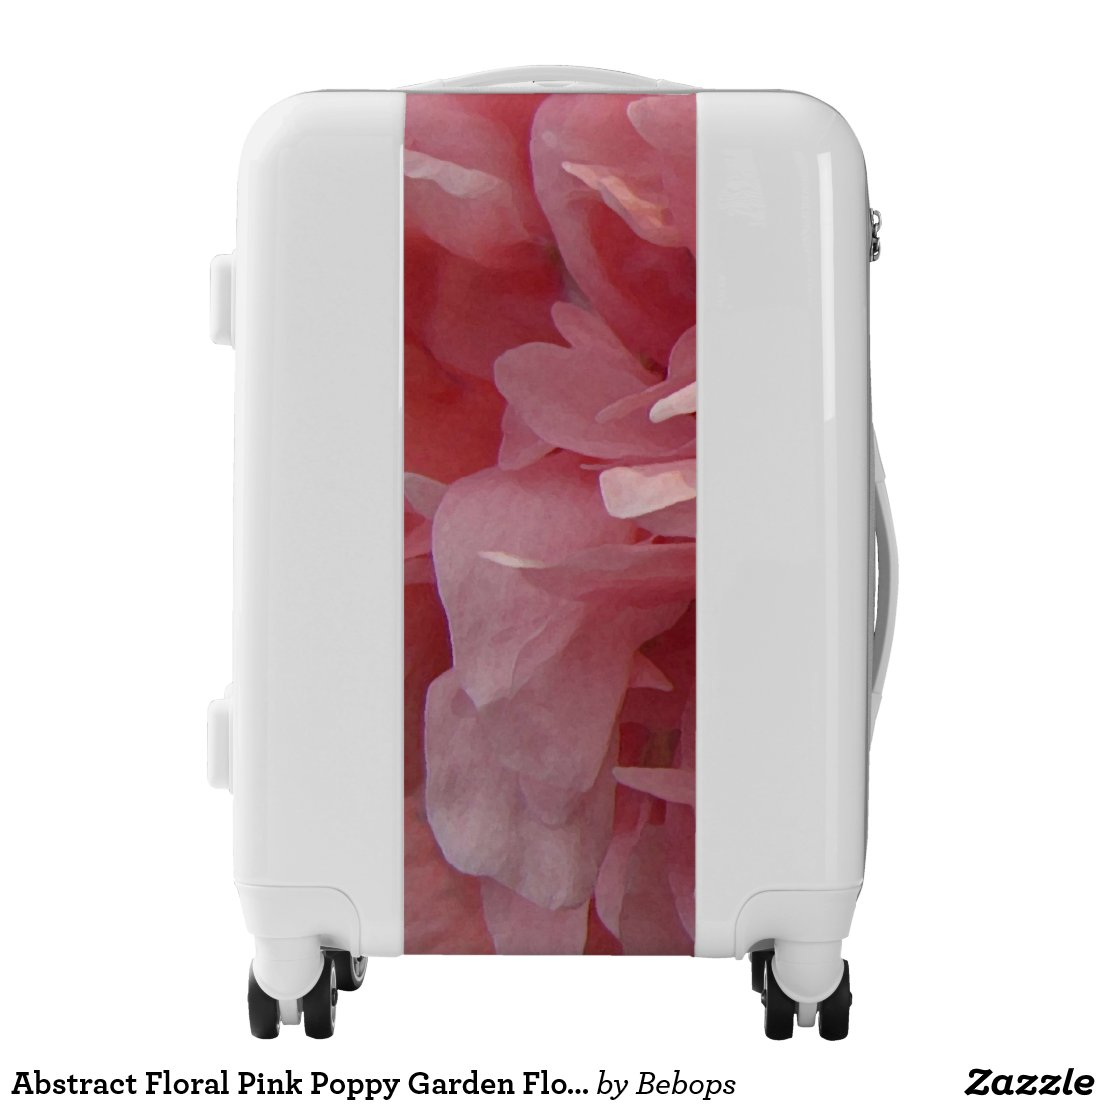 Abstract Floral Pink Poppy Garden Flower Luggage